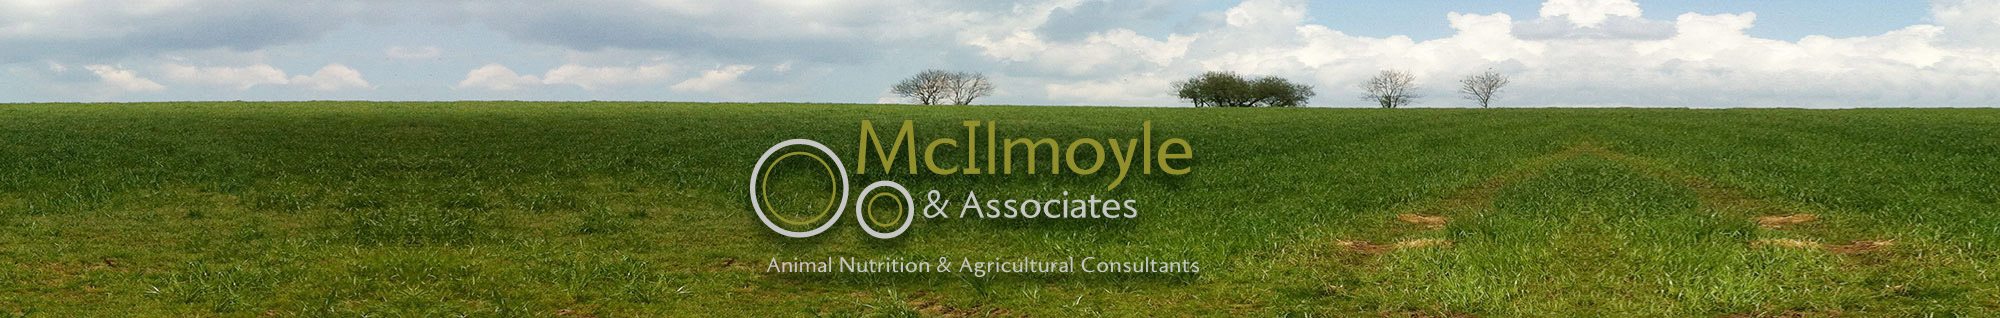 McIlmoyle & Associates. Animal Nutrition and Agricultural Consultants.